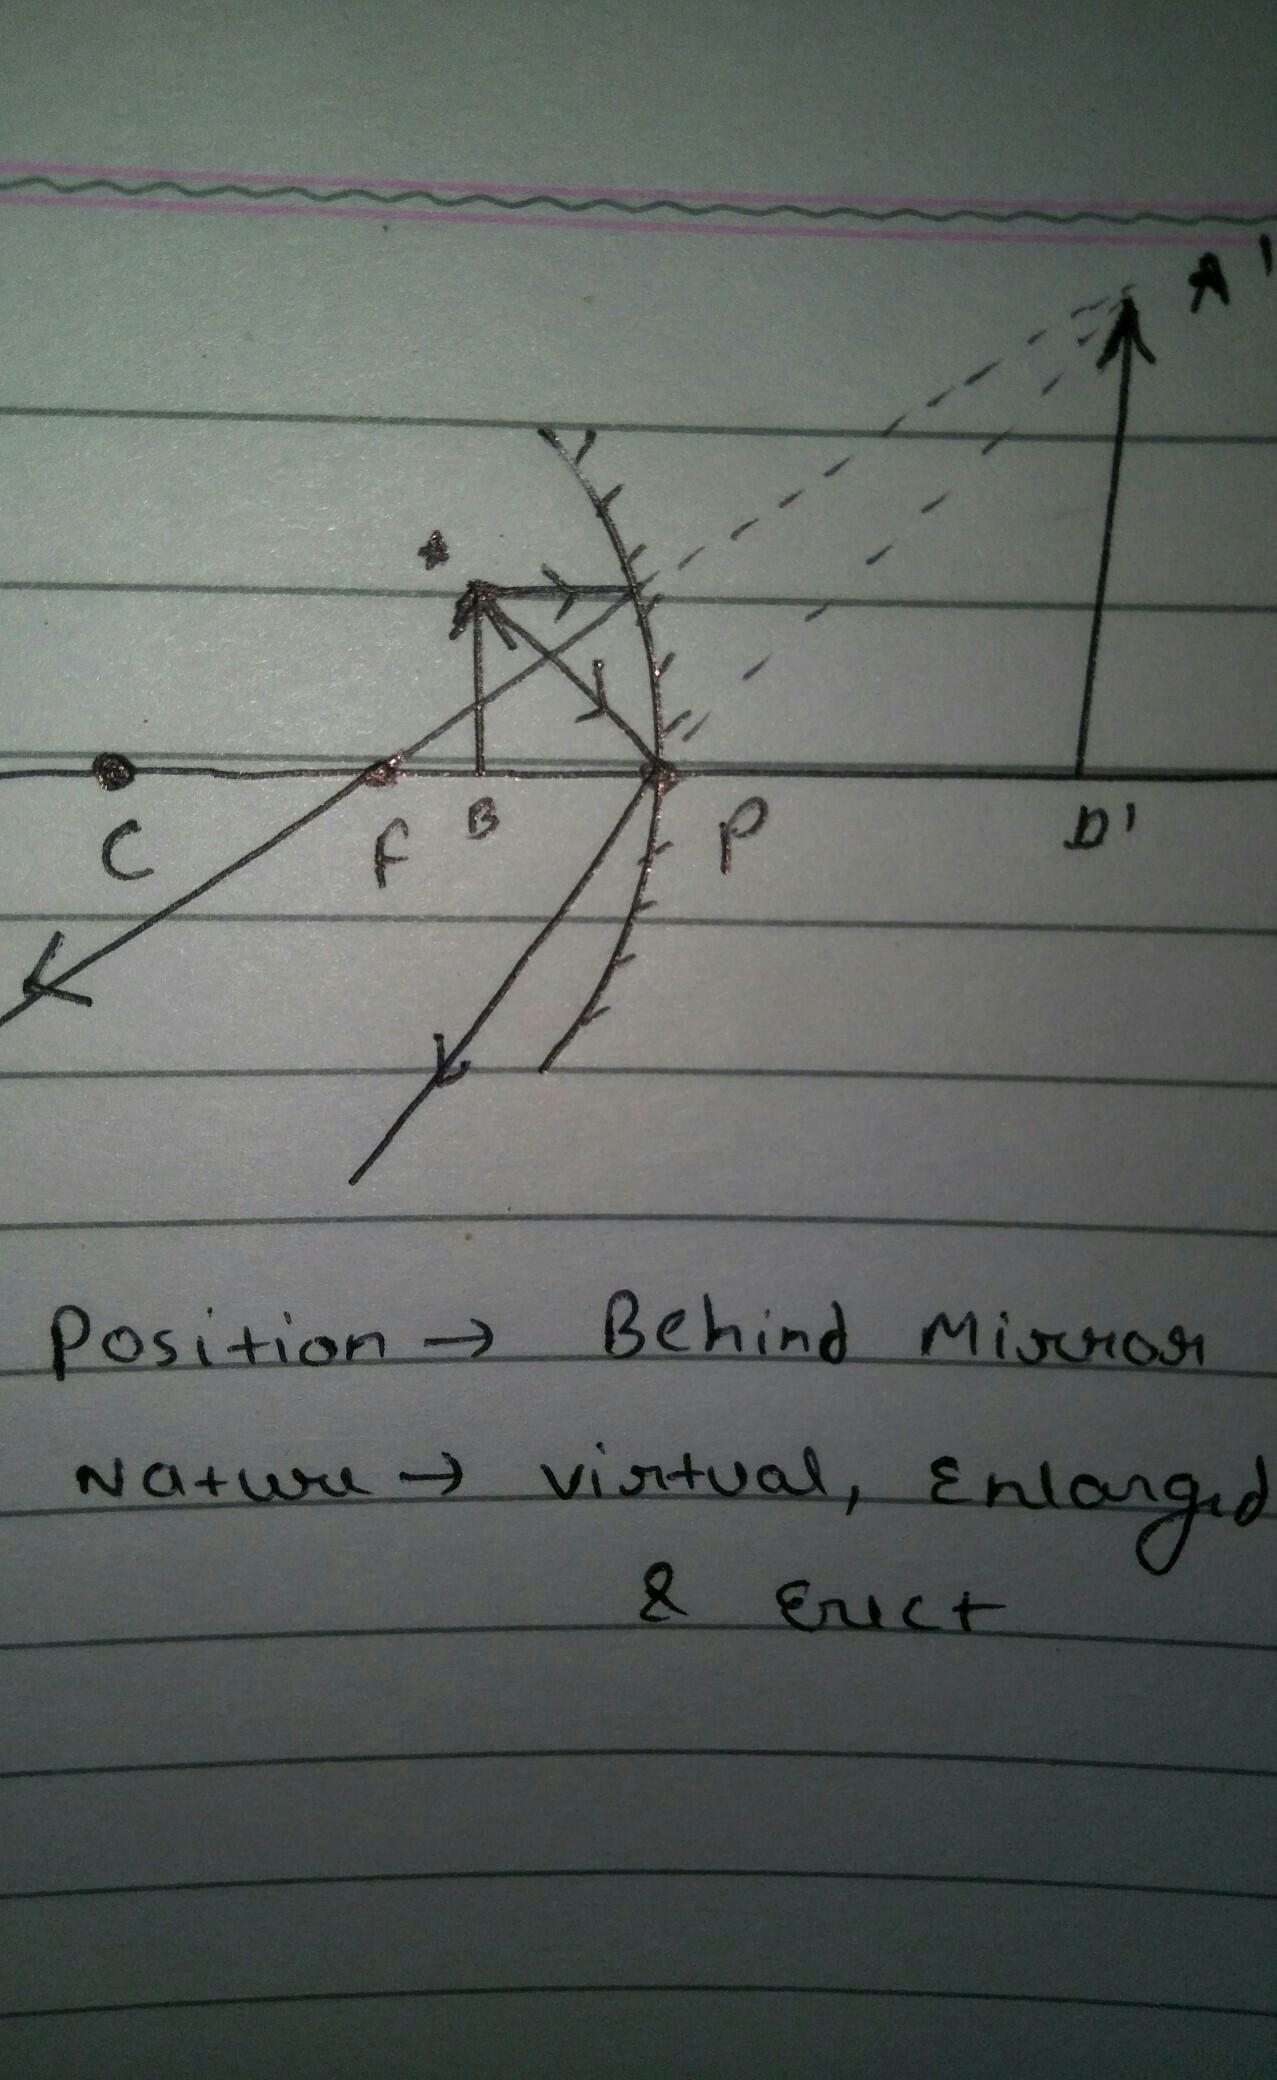 Draw A Ray Diagram To Show The 1 Position And 2 Nature